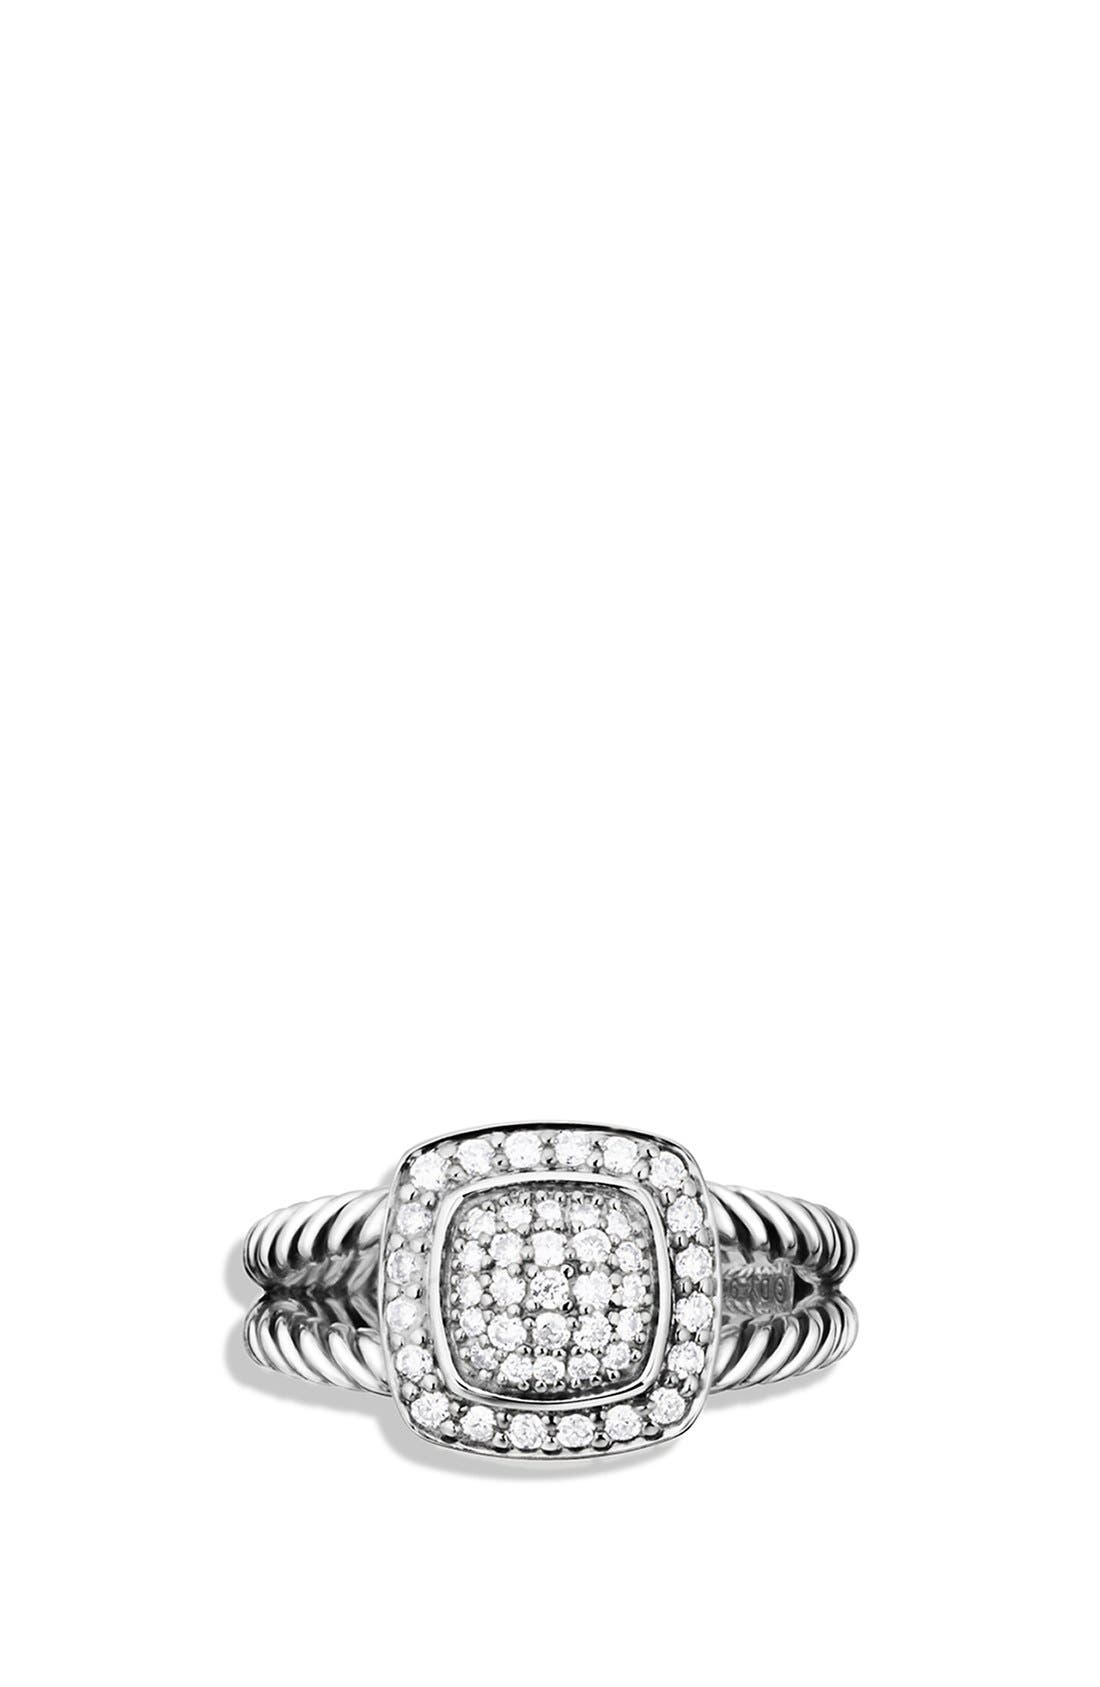 'Albion' Petite Ring with Diamonds,                             Alternate thumbnail 3, color,                             DIAMOND